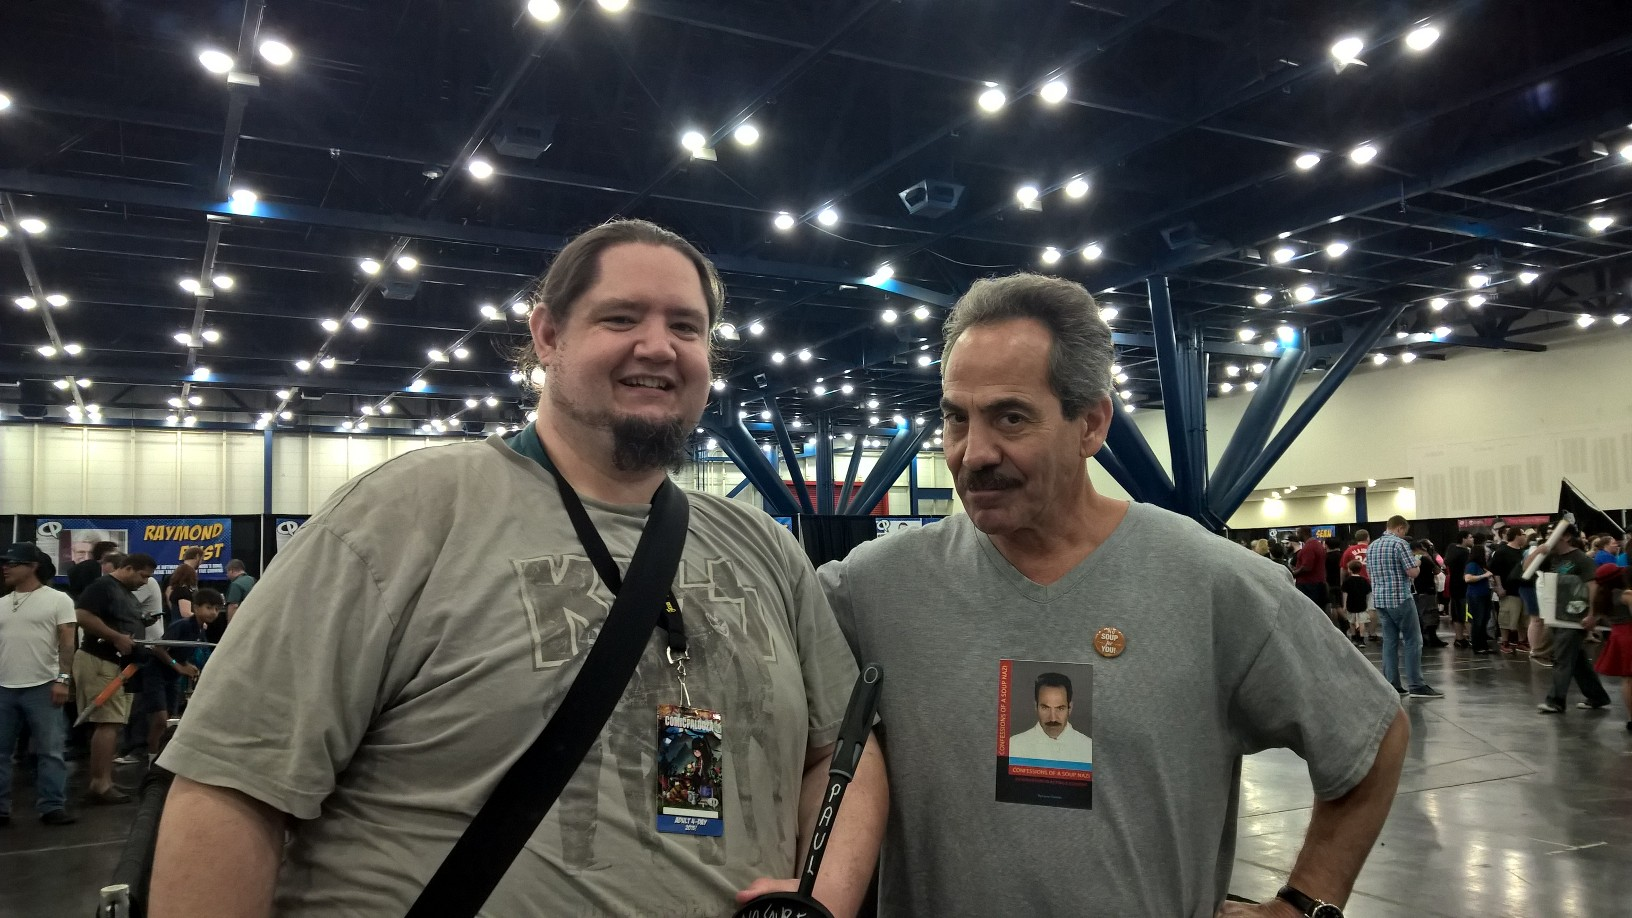 My friend Jeremy and Soup Nazi....NO SOUP FOR YOU!